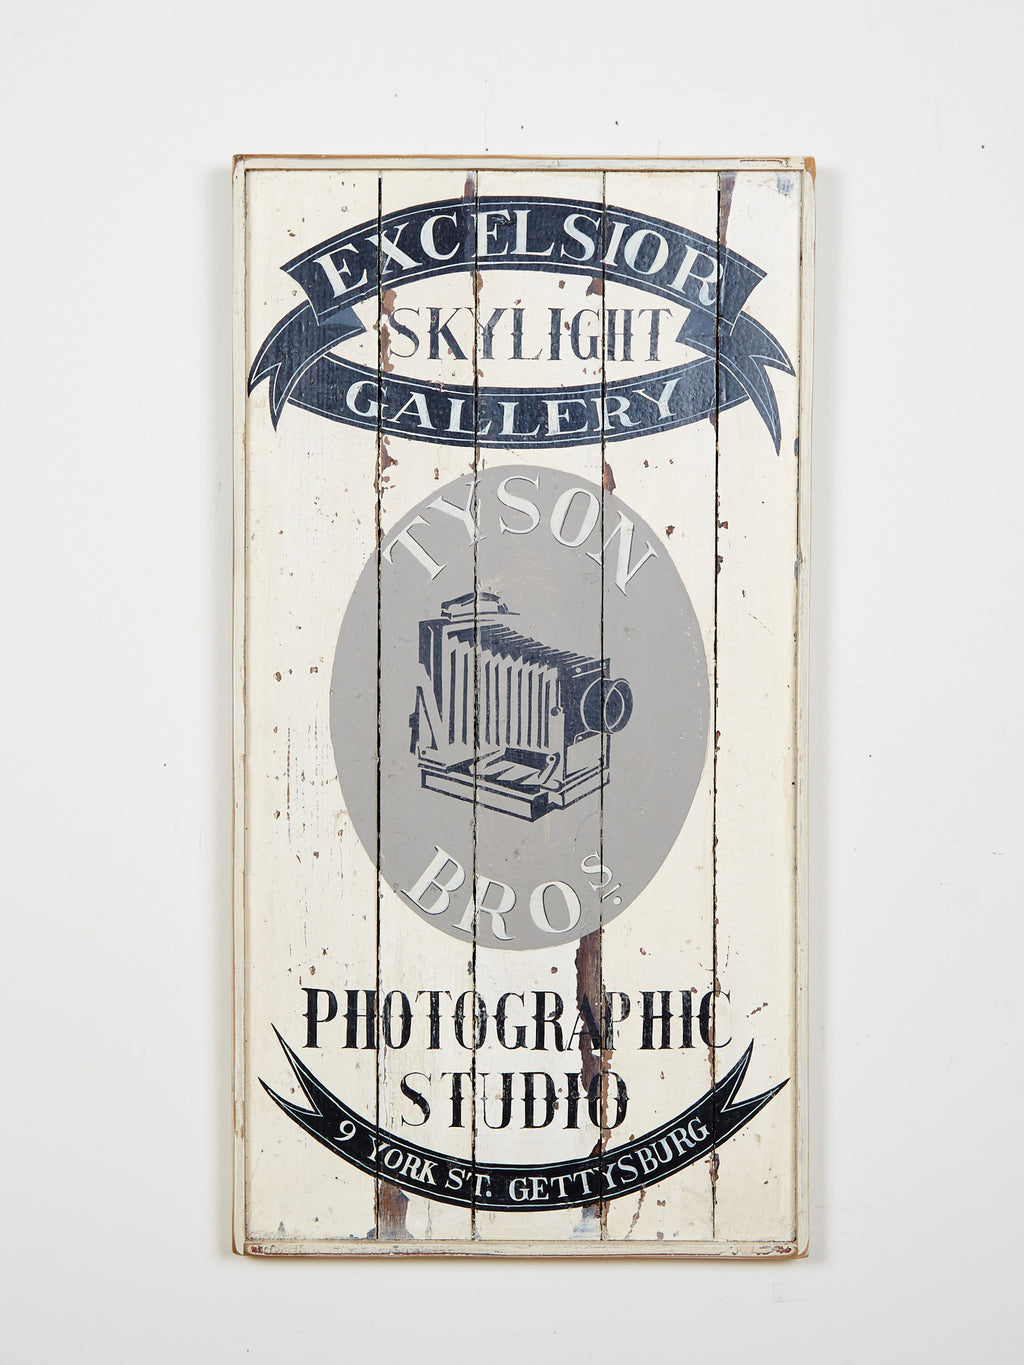 Excelsior Skylight Gallery, Tyson Brothers Photographic Studio Americana Art